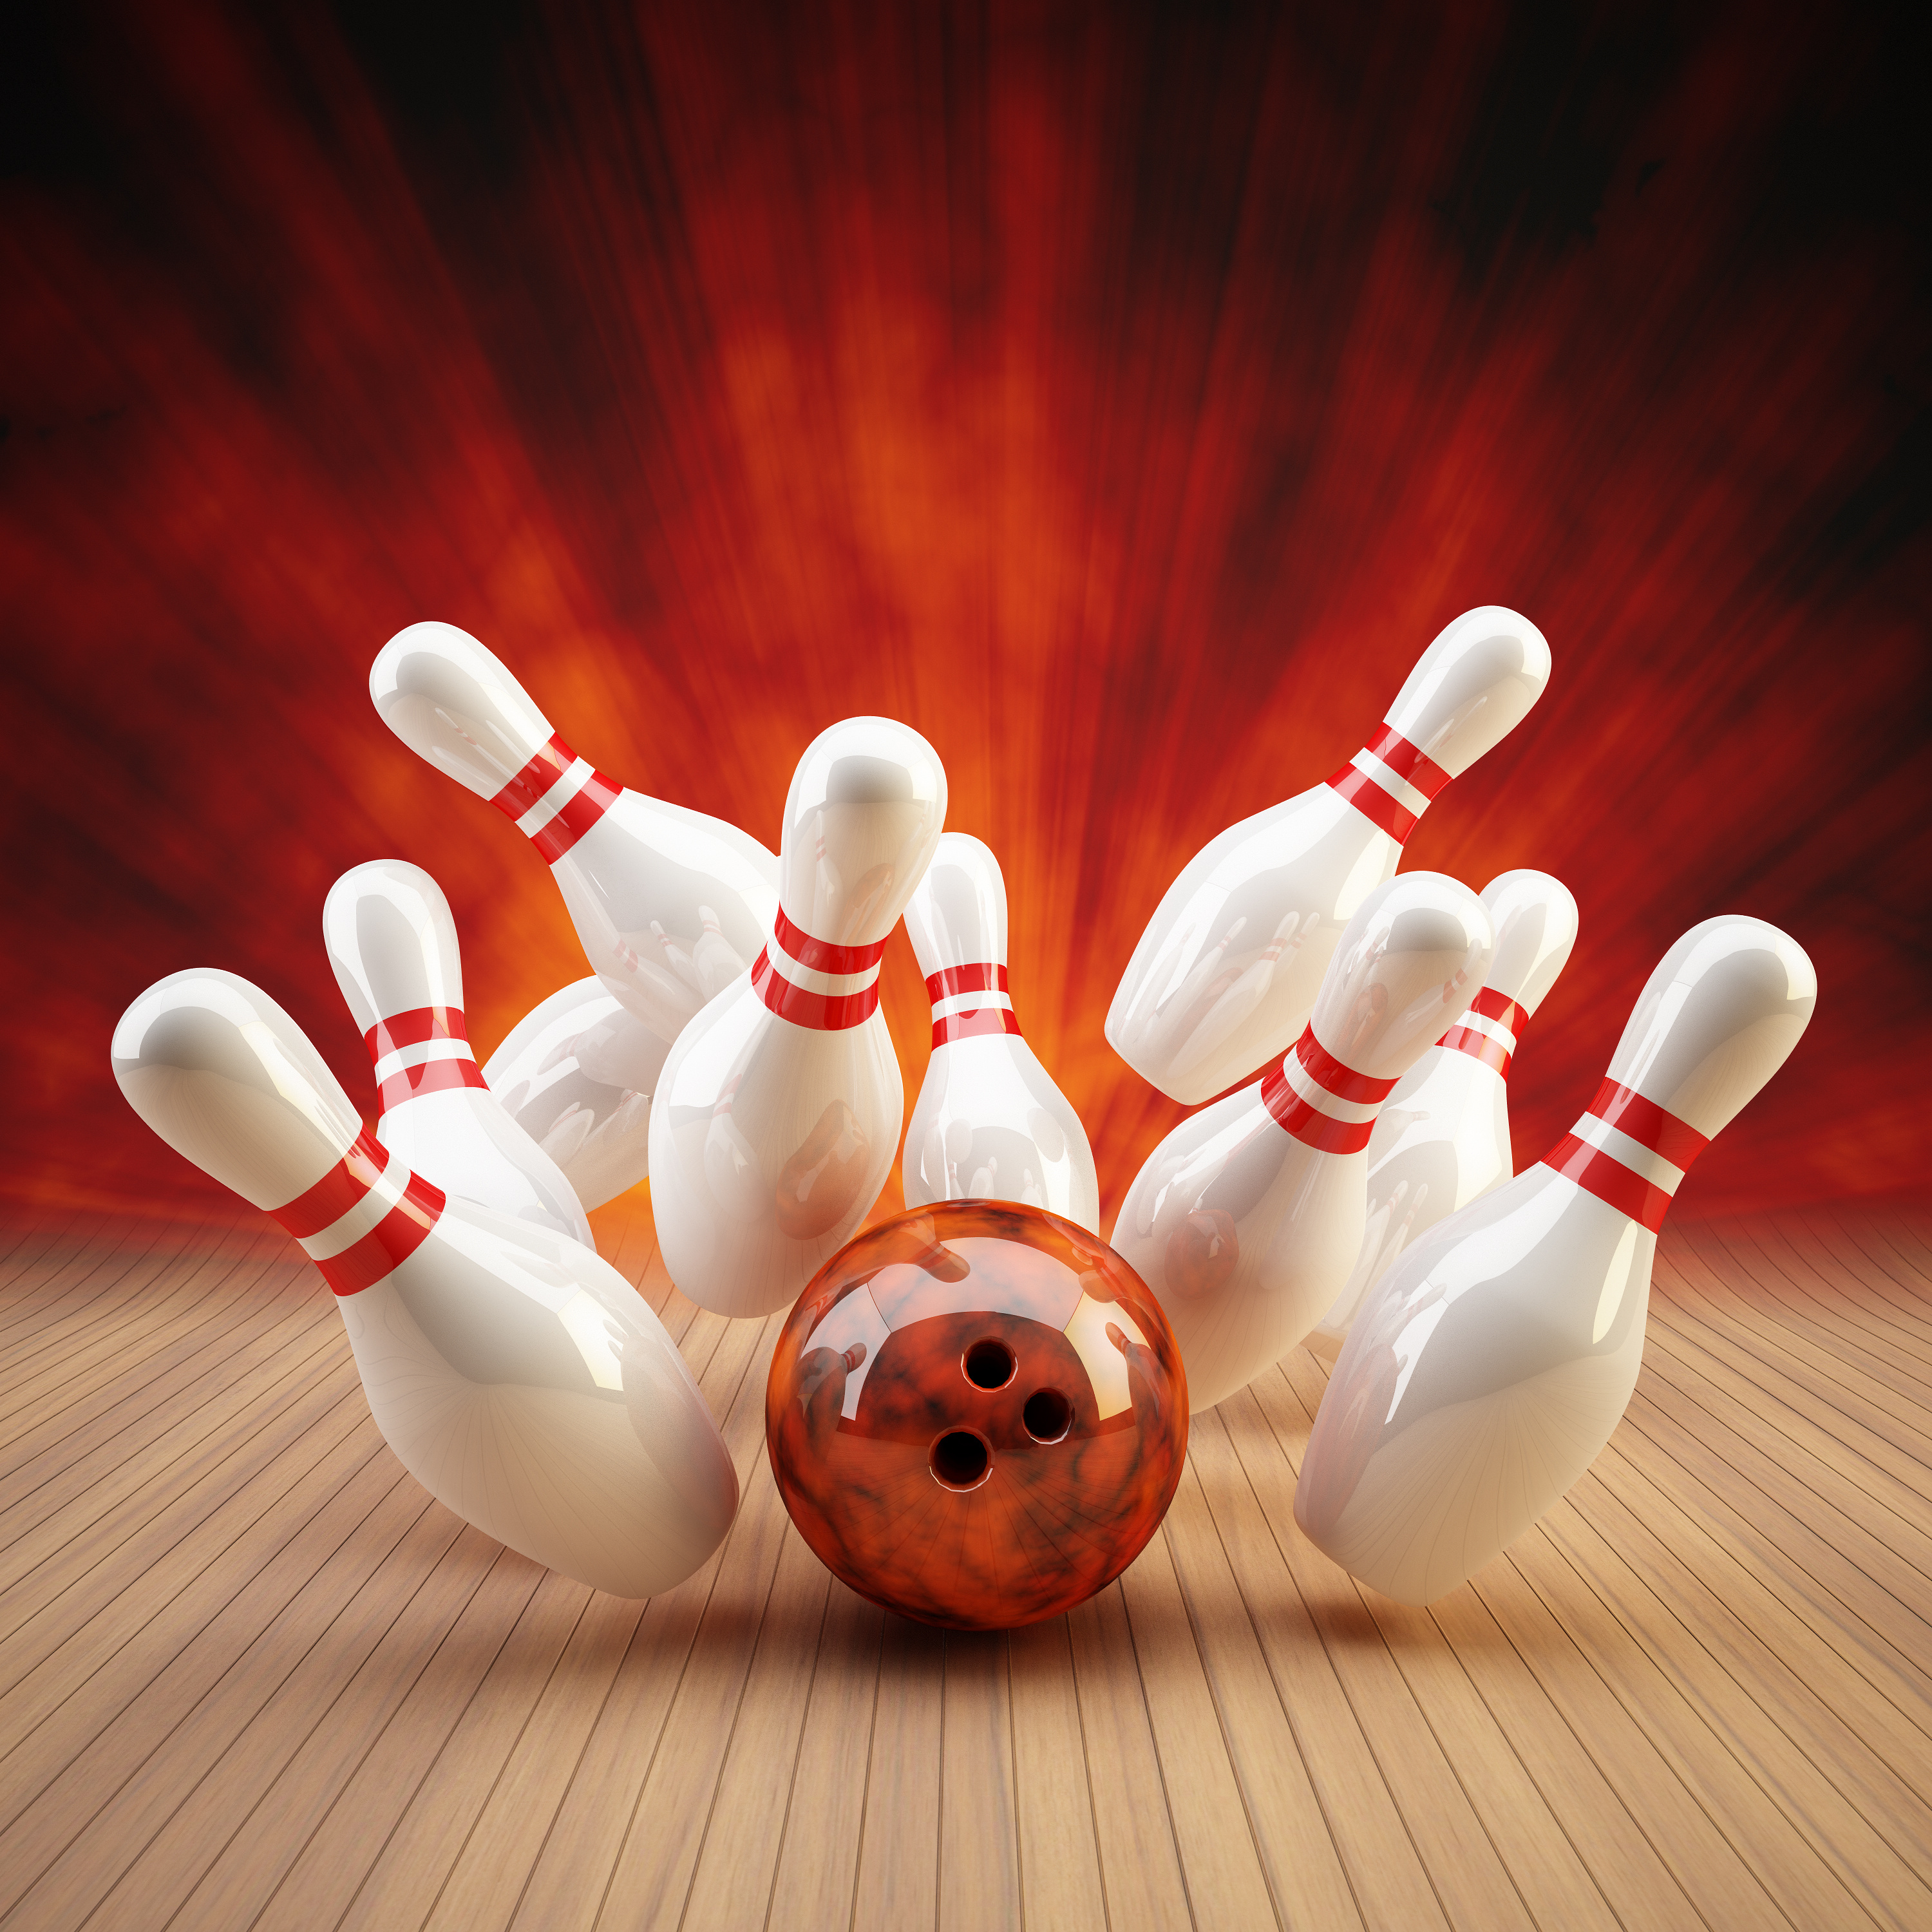 seaway lanes bowling alley watertown  ny bowling clipart images bowling clipart black and white